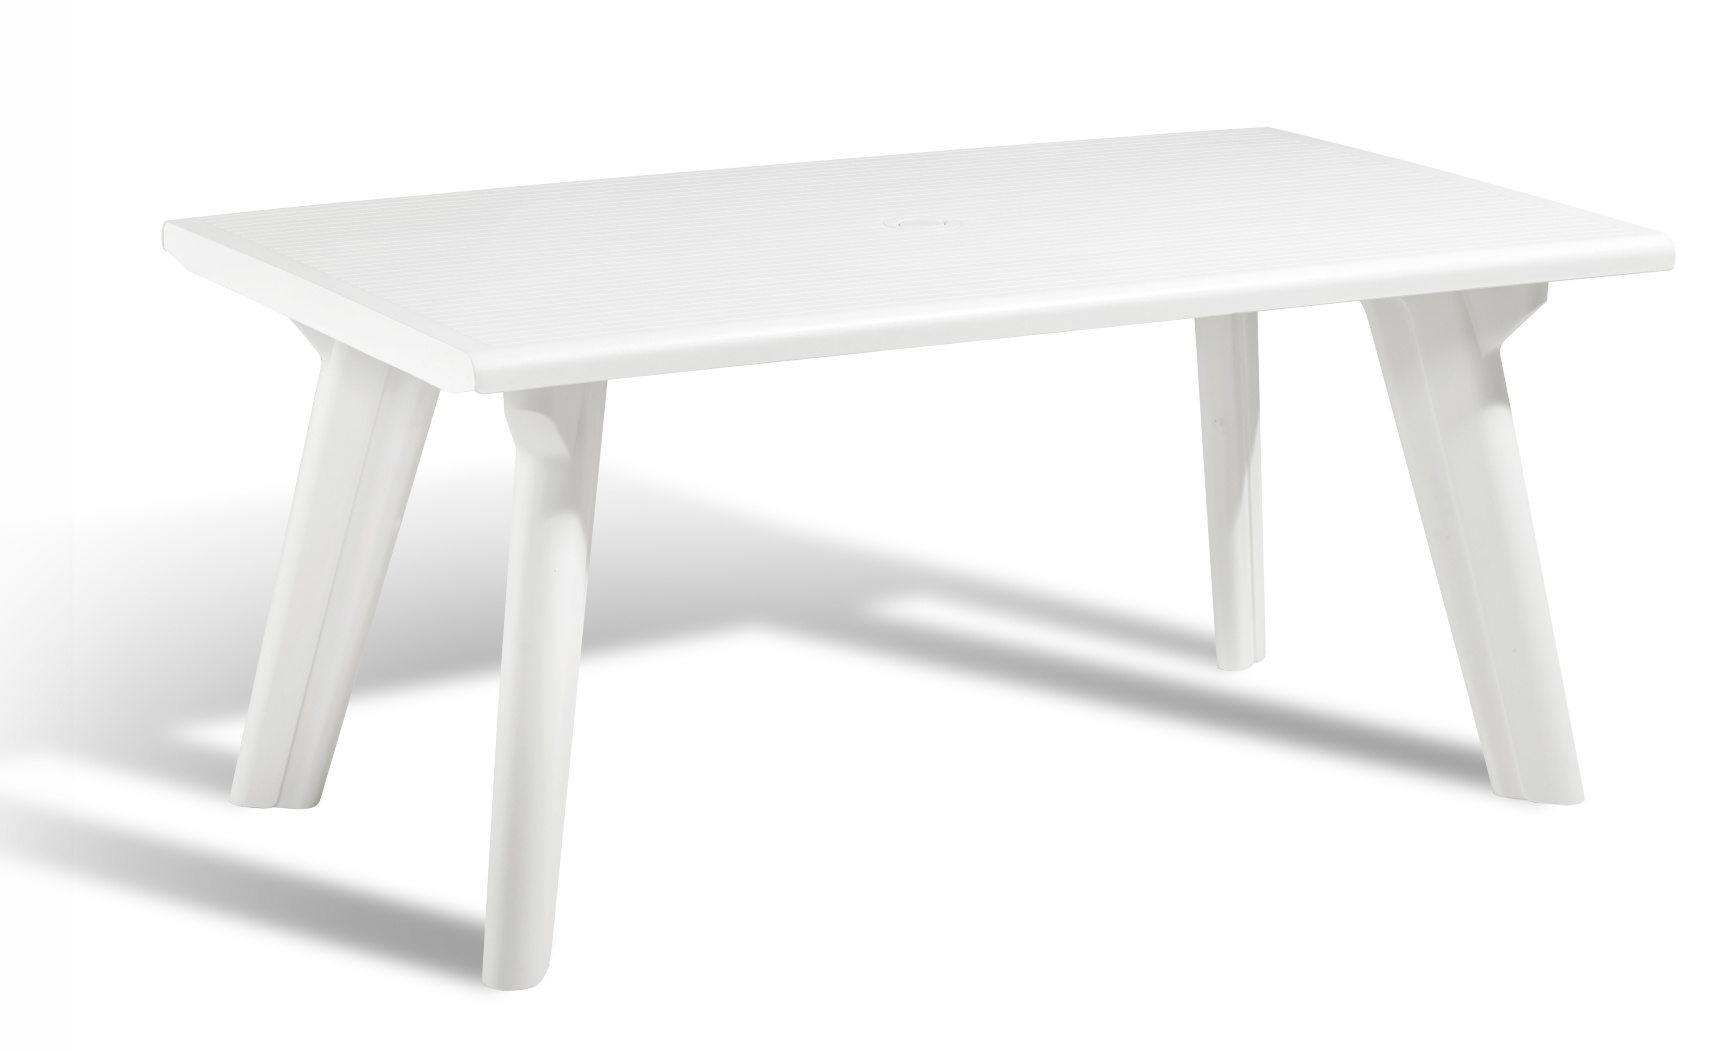 allibert dante garden table white allibert. Black Bedroom Furniture Sets. Home Design Ideas